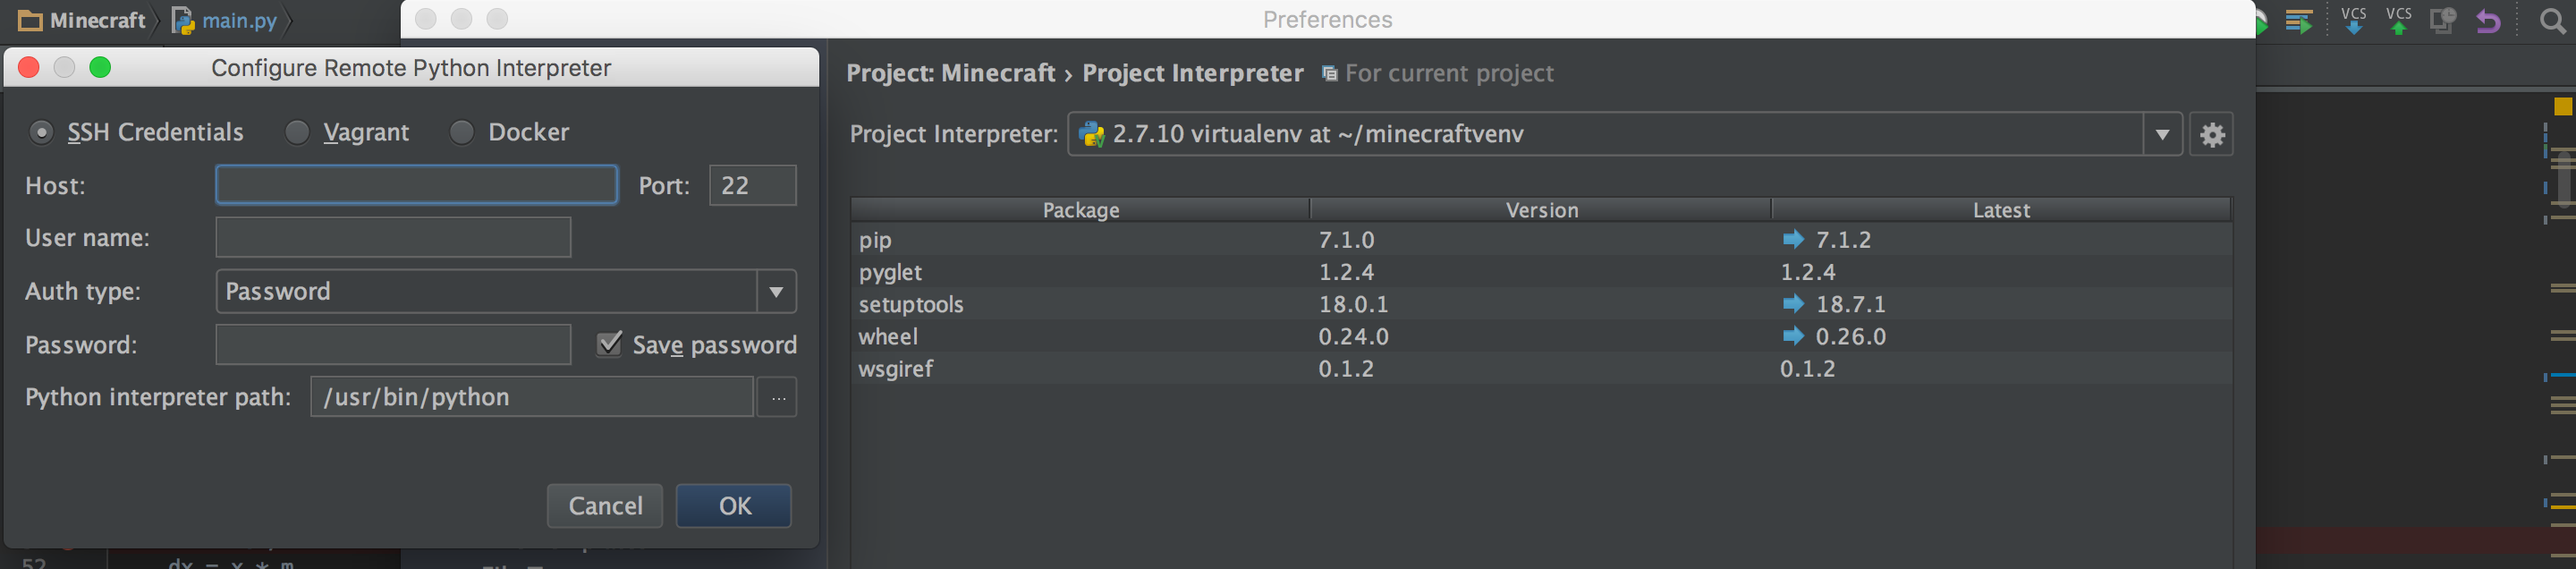 no python interpreter configured for the project pycharm